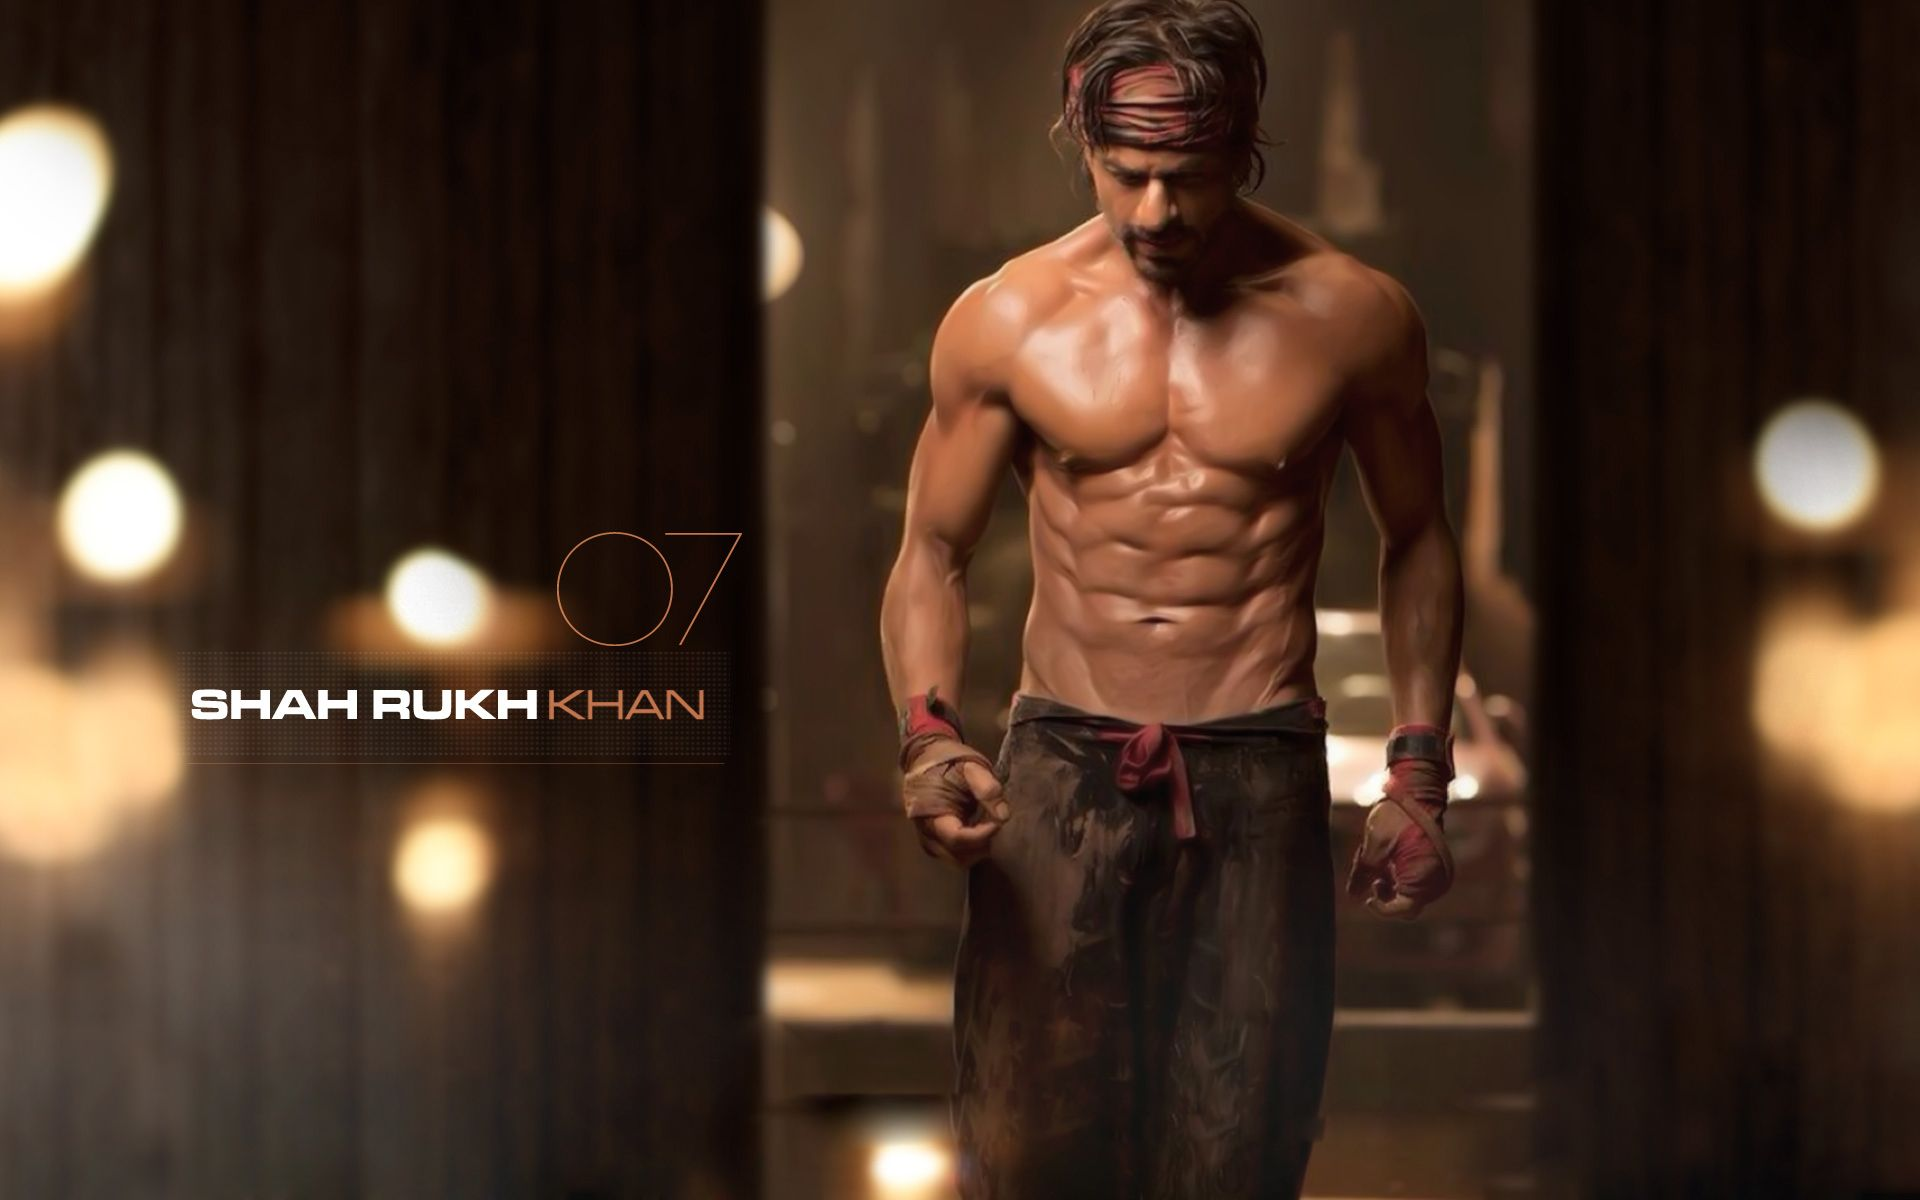 Bollywood Actors Walpaper In 2080p: Shahrukh Khan Sexy Body Hd Wallpaper Bollywood, Actor